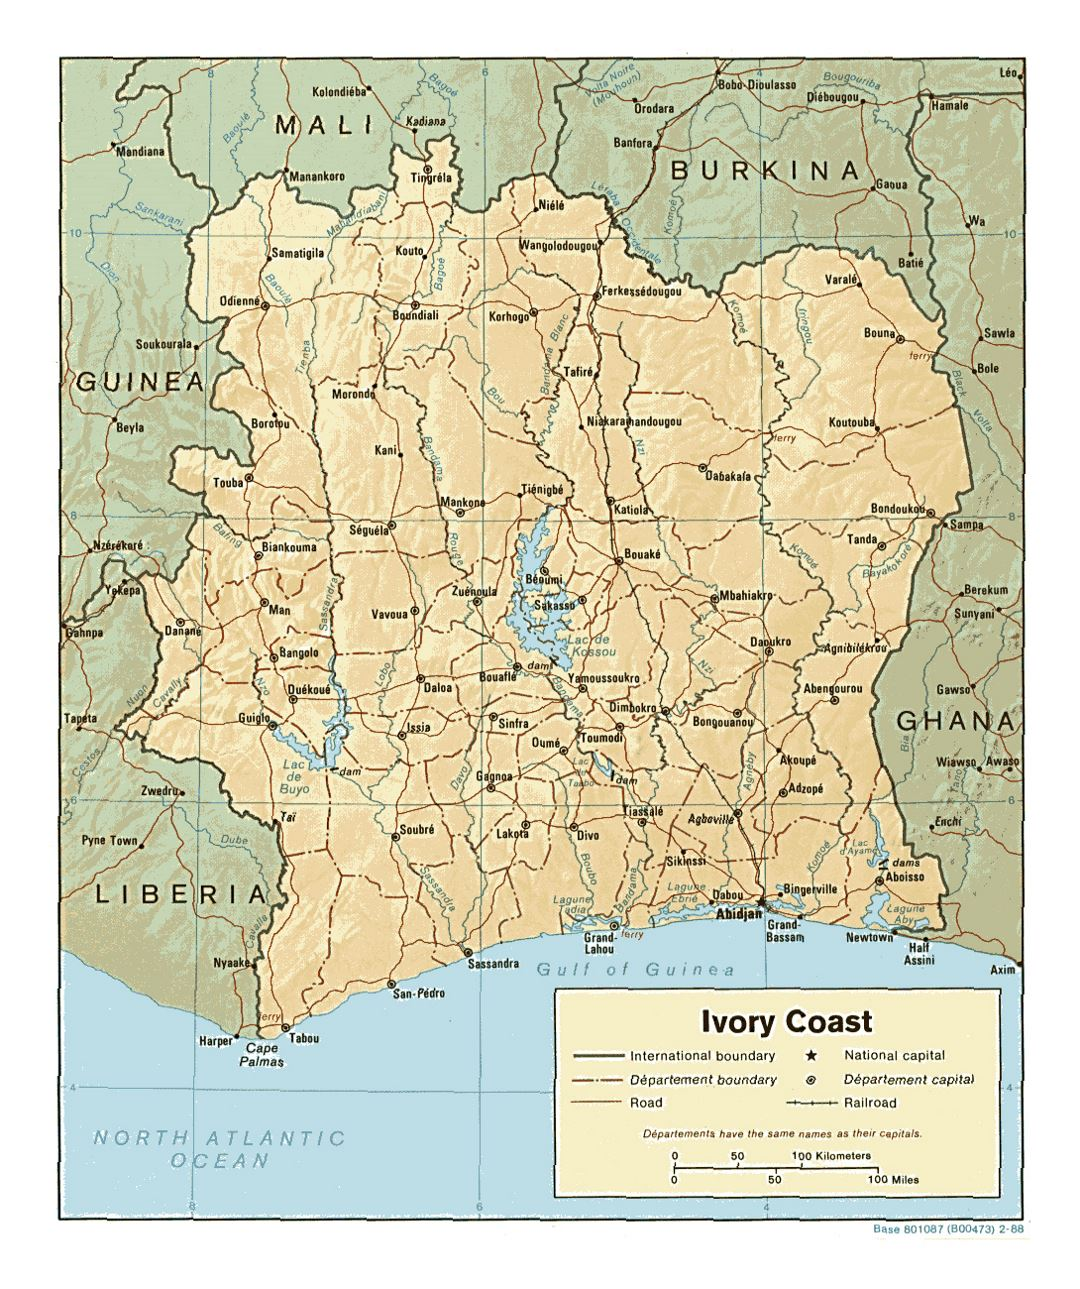 Detailed political and administrative map of Cote d'Ivoire with relief, roads, railroads and major cities - 1988